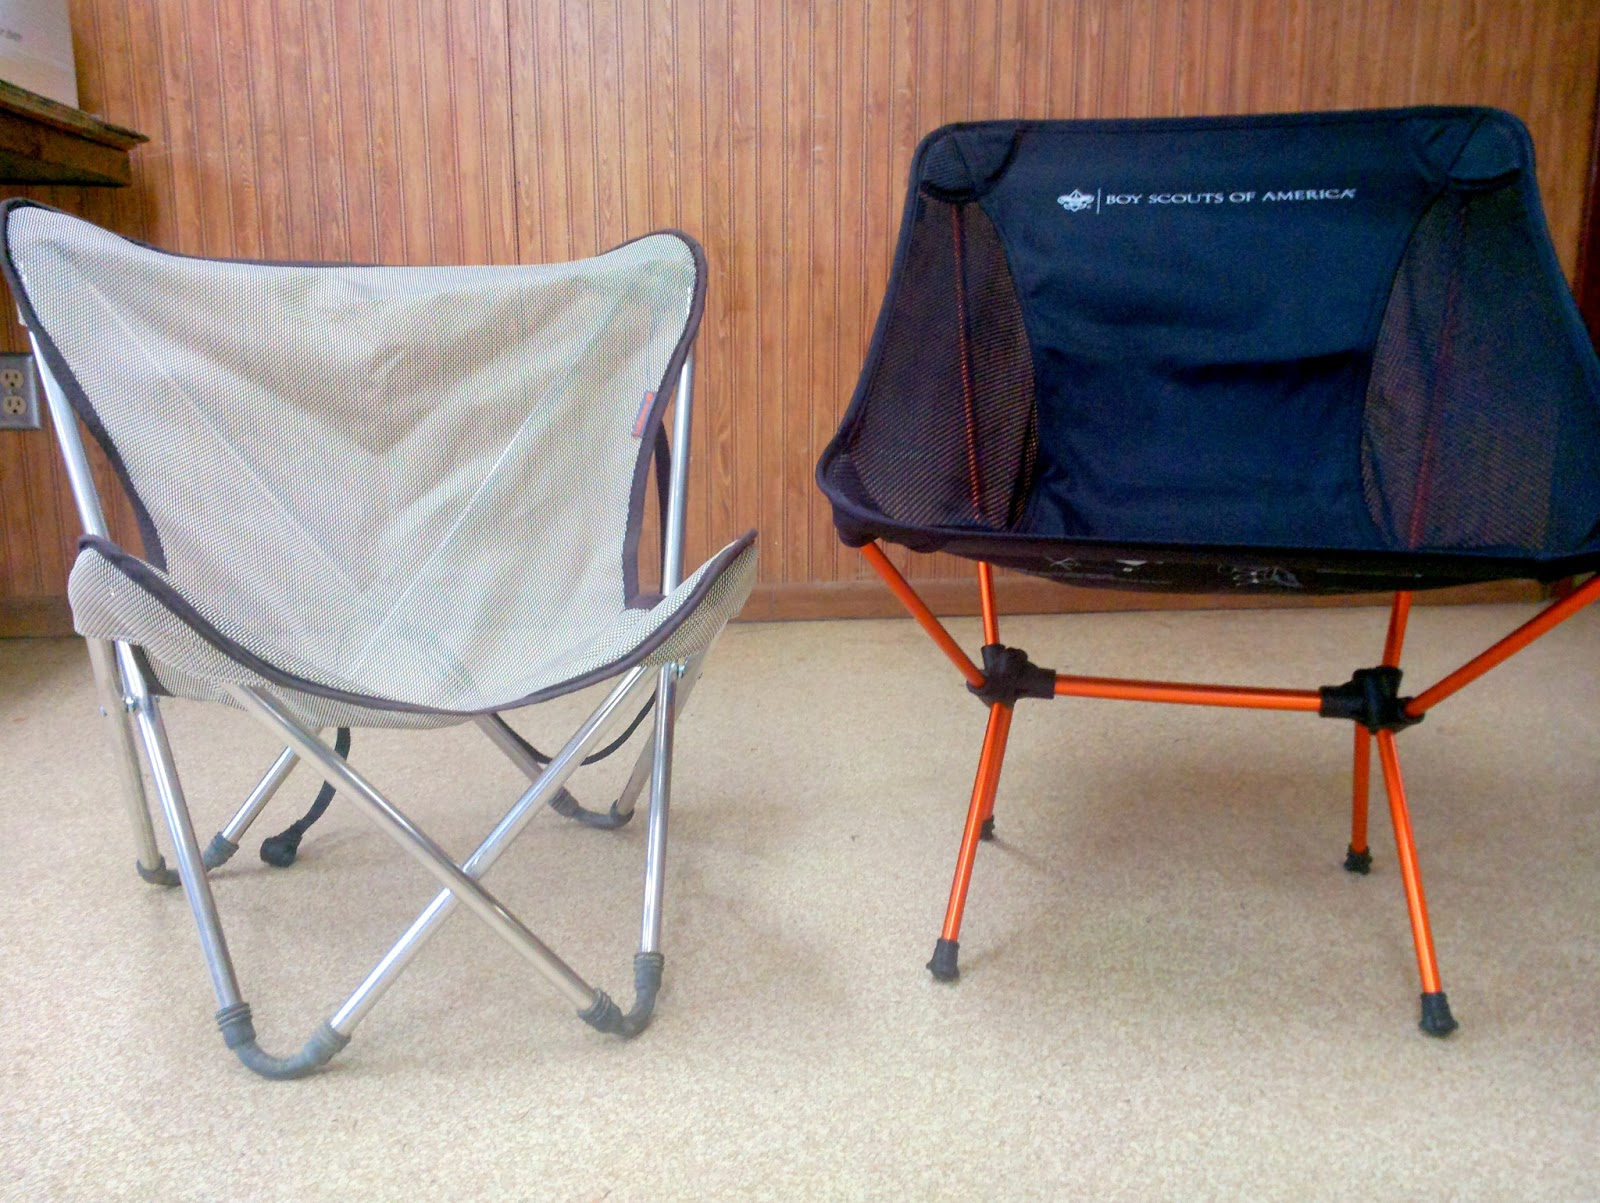 Backpacking chair ultralight - The Bsa Chair Is 13 5 Off The Floor Compared To The Lafuma S 8 5